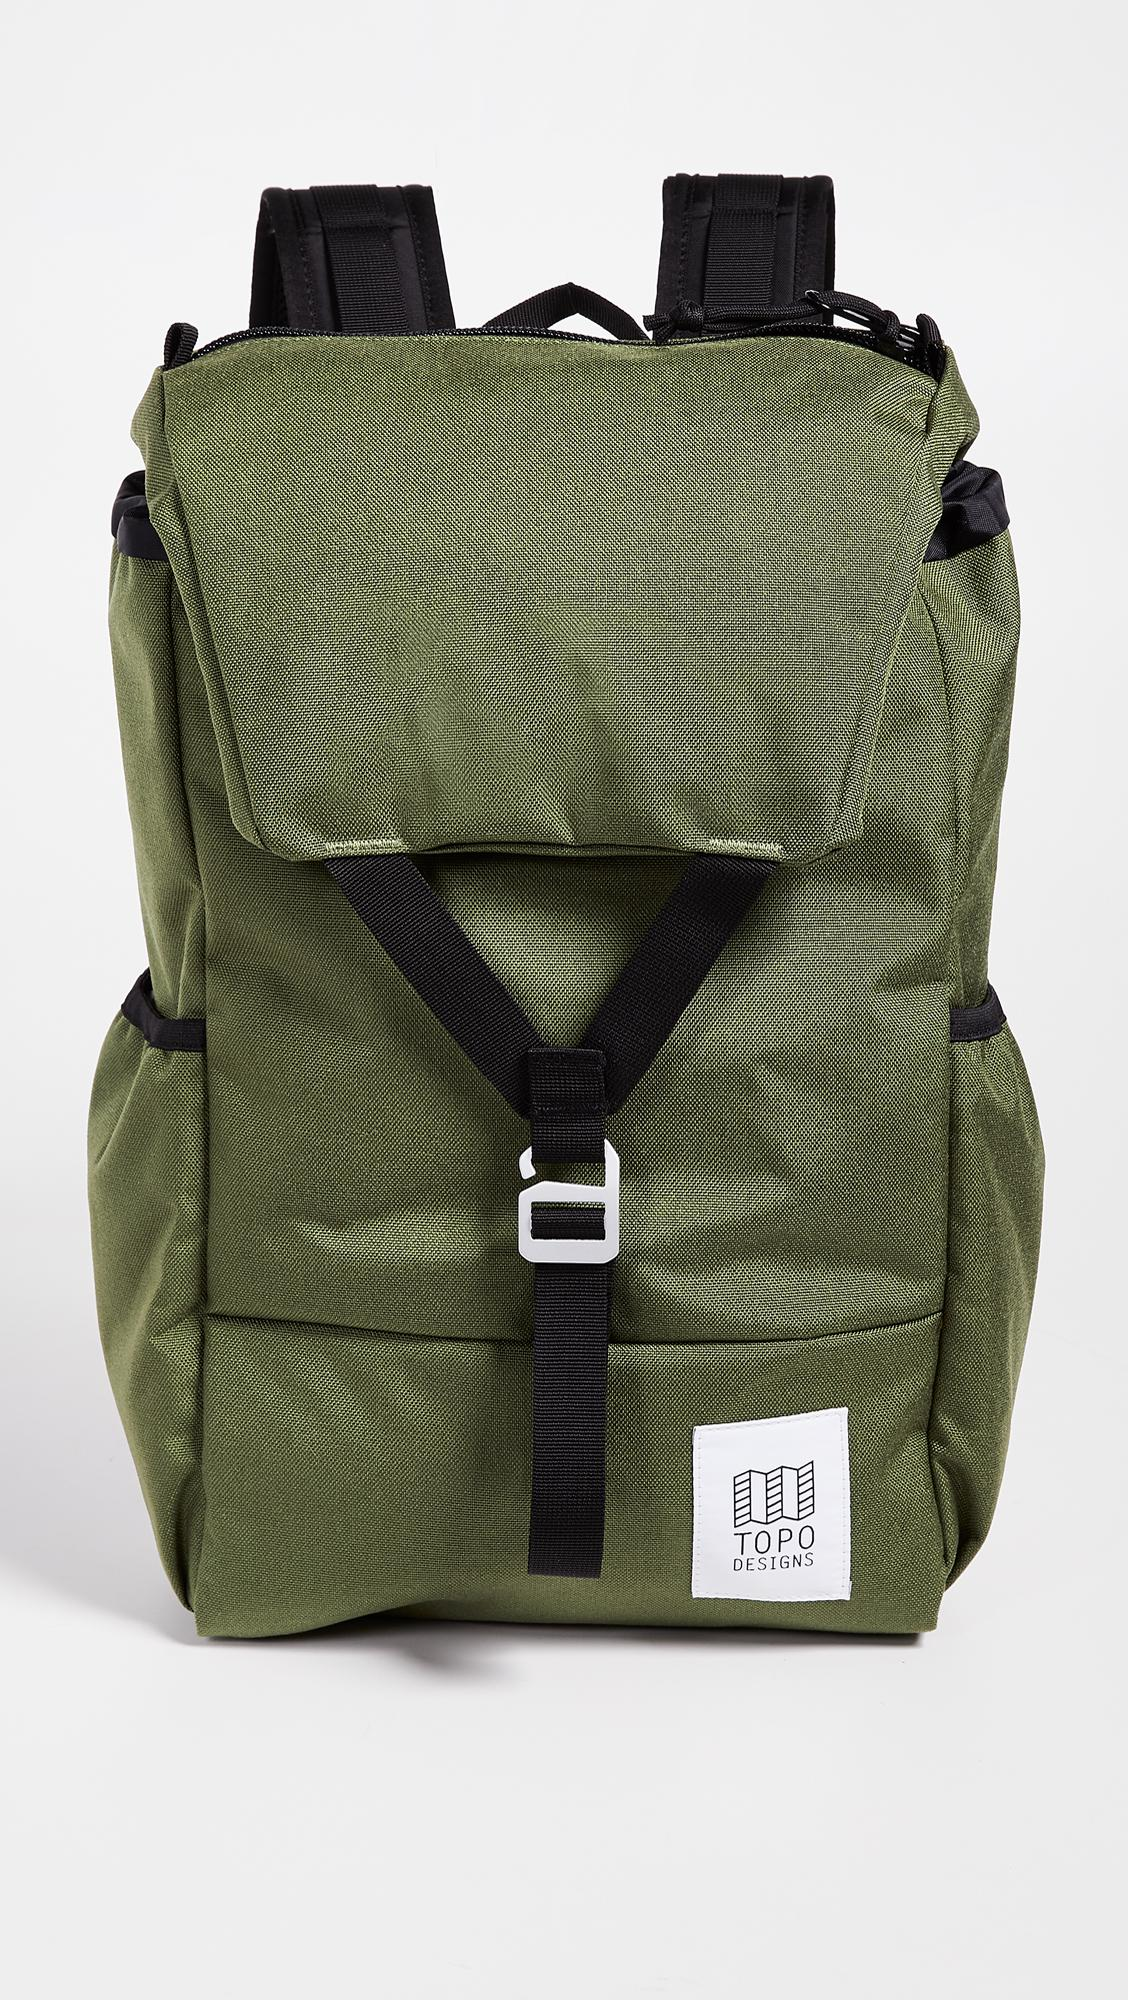 4157c428a ... Topo Designs - Green Y-pack Backpack for Men - Lyst · Visit East Dane.  Tap to visit site